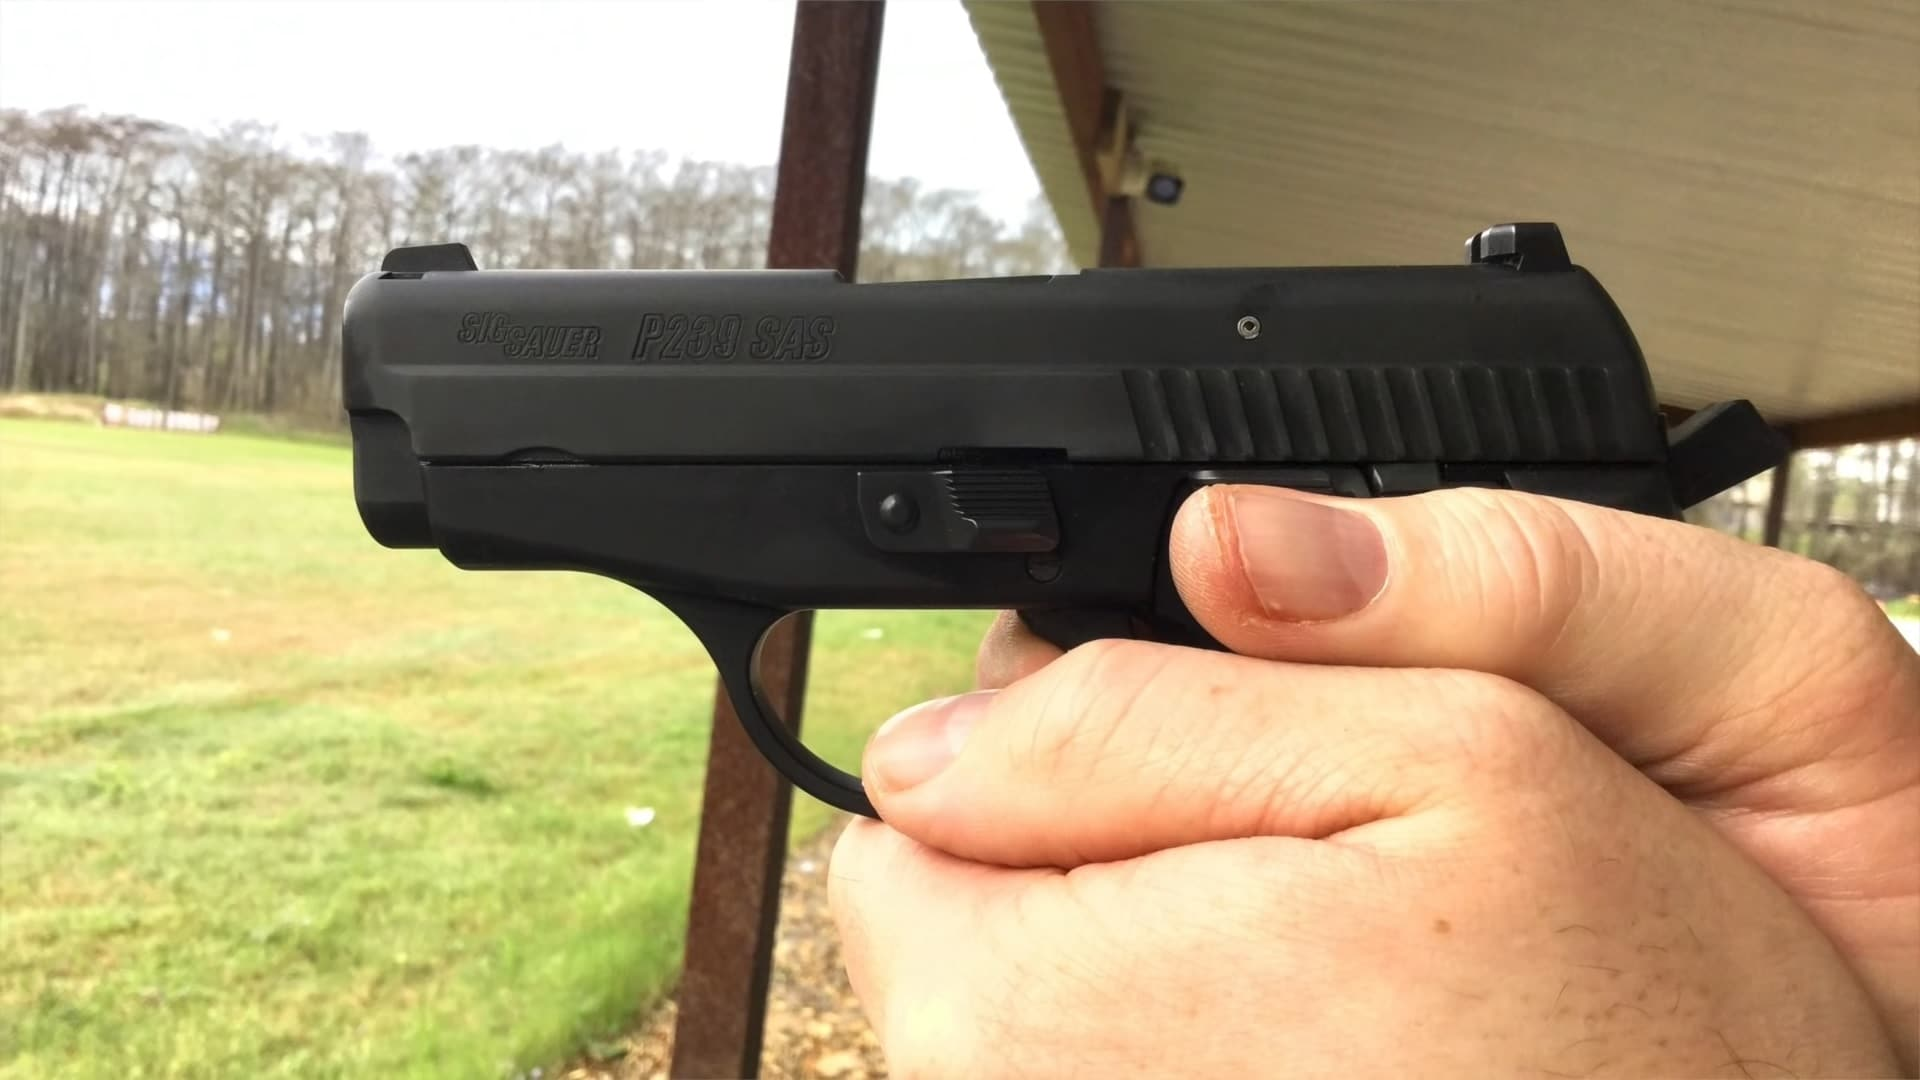 In Memorandum to the SIG P239 Compact Carry Gun (VIDEOS)